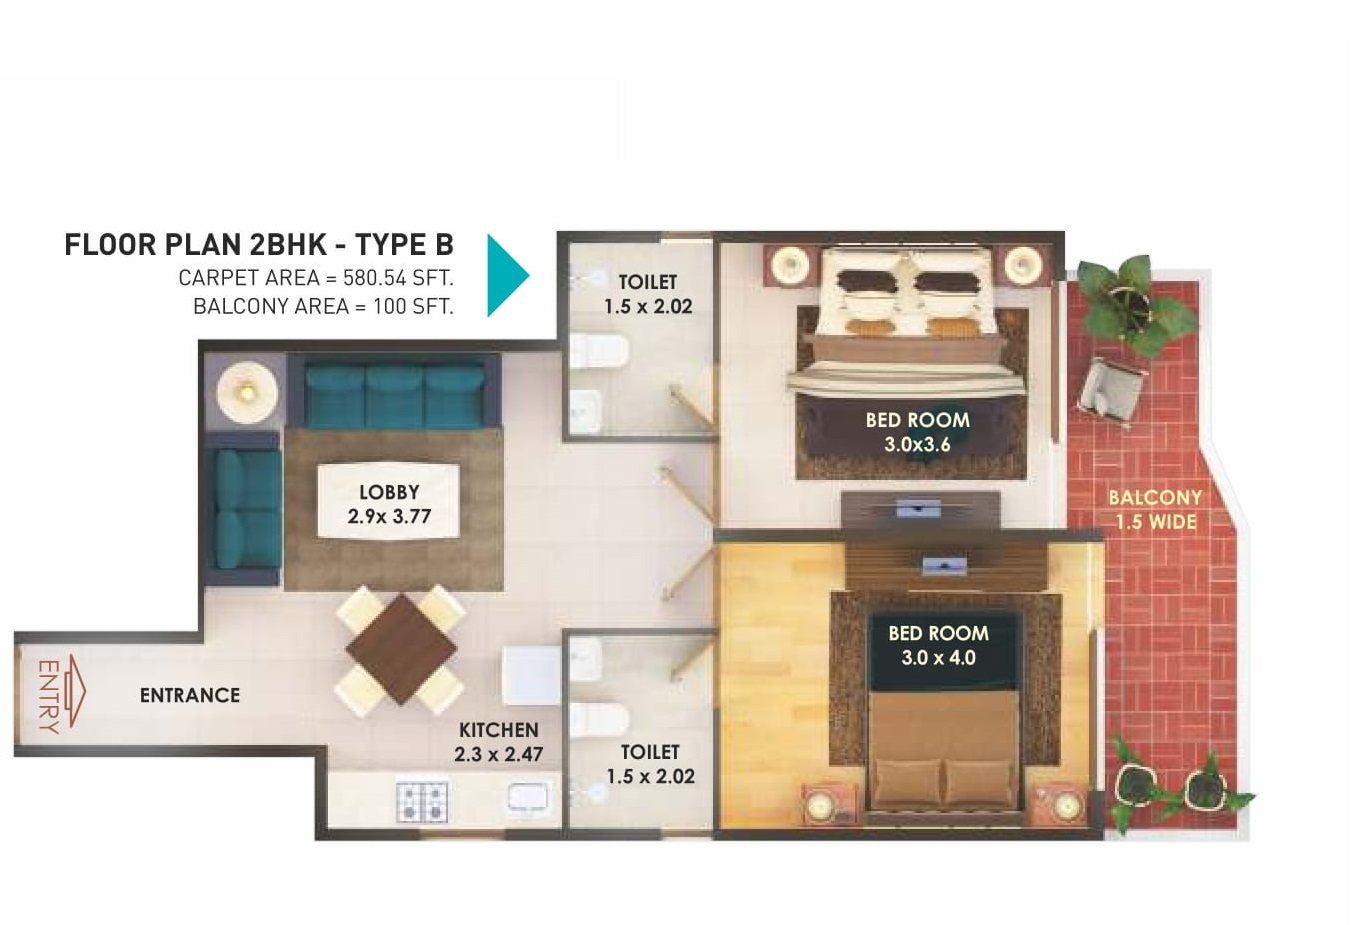 pyramid fusion homes floor plan 2bhk b